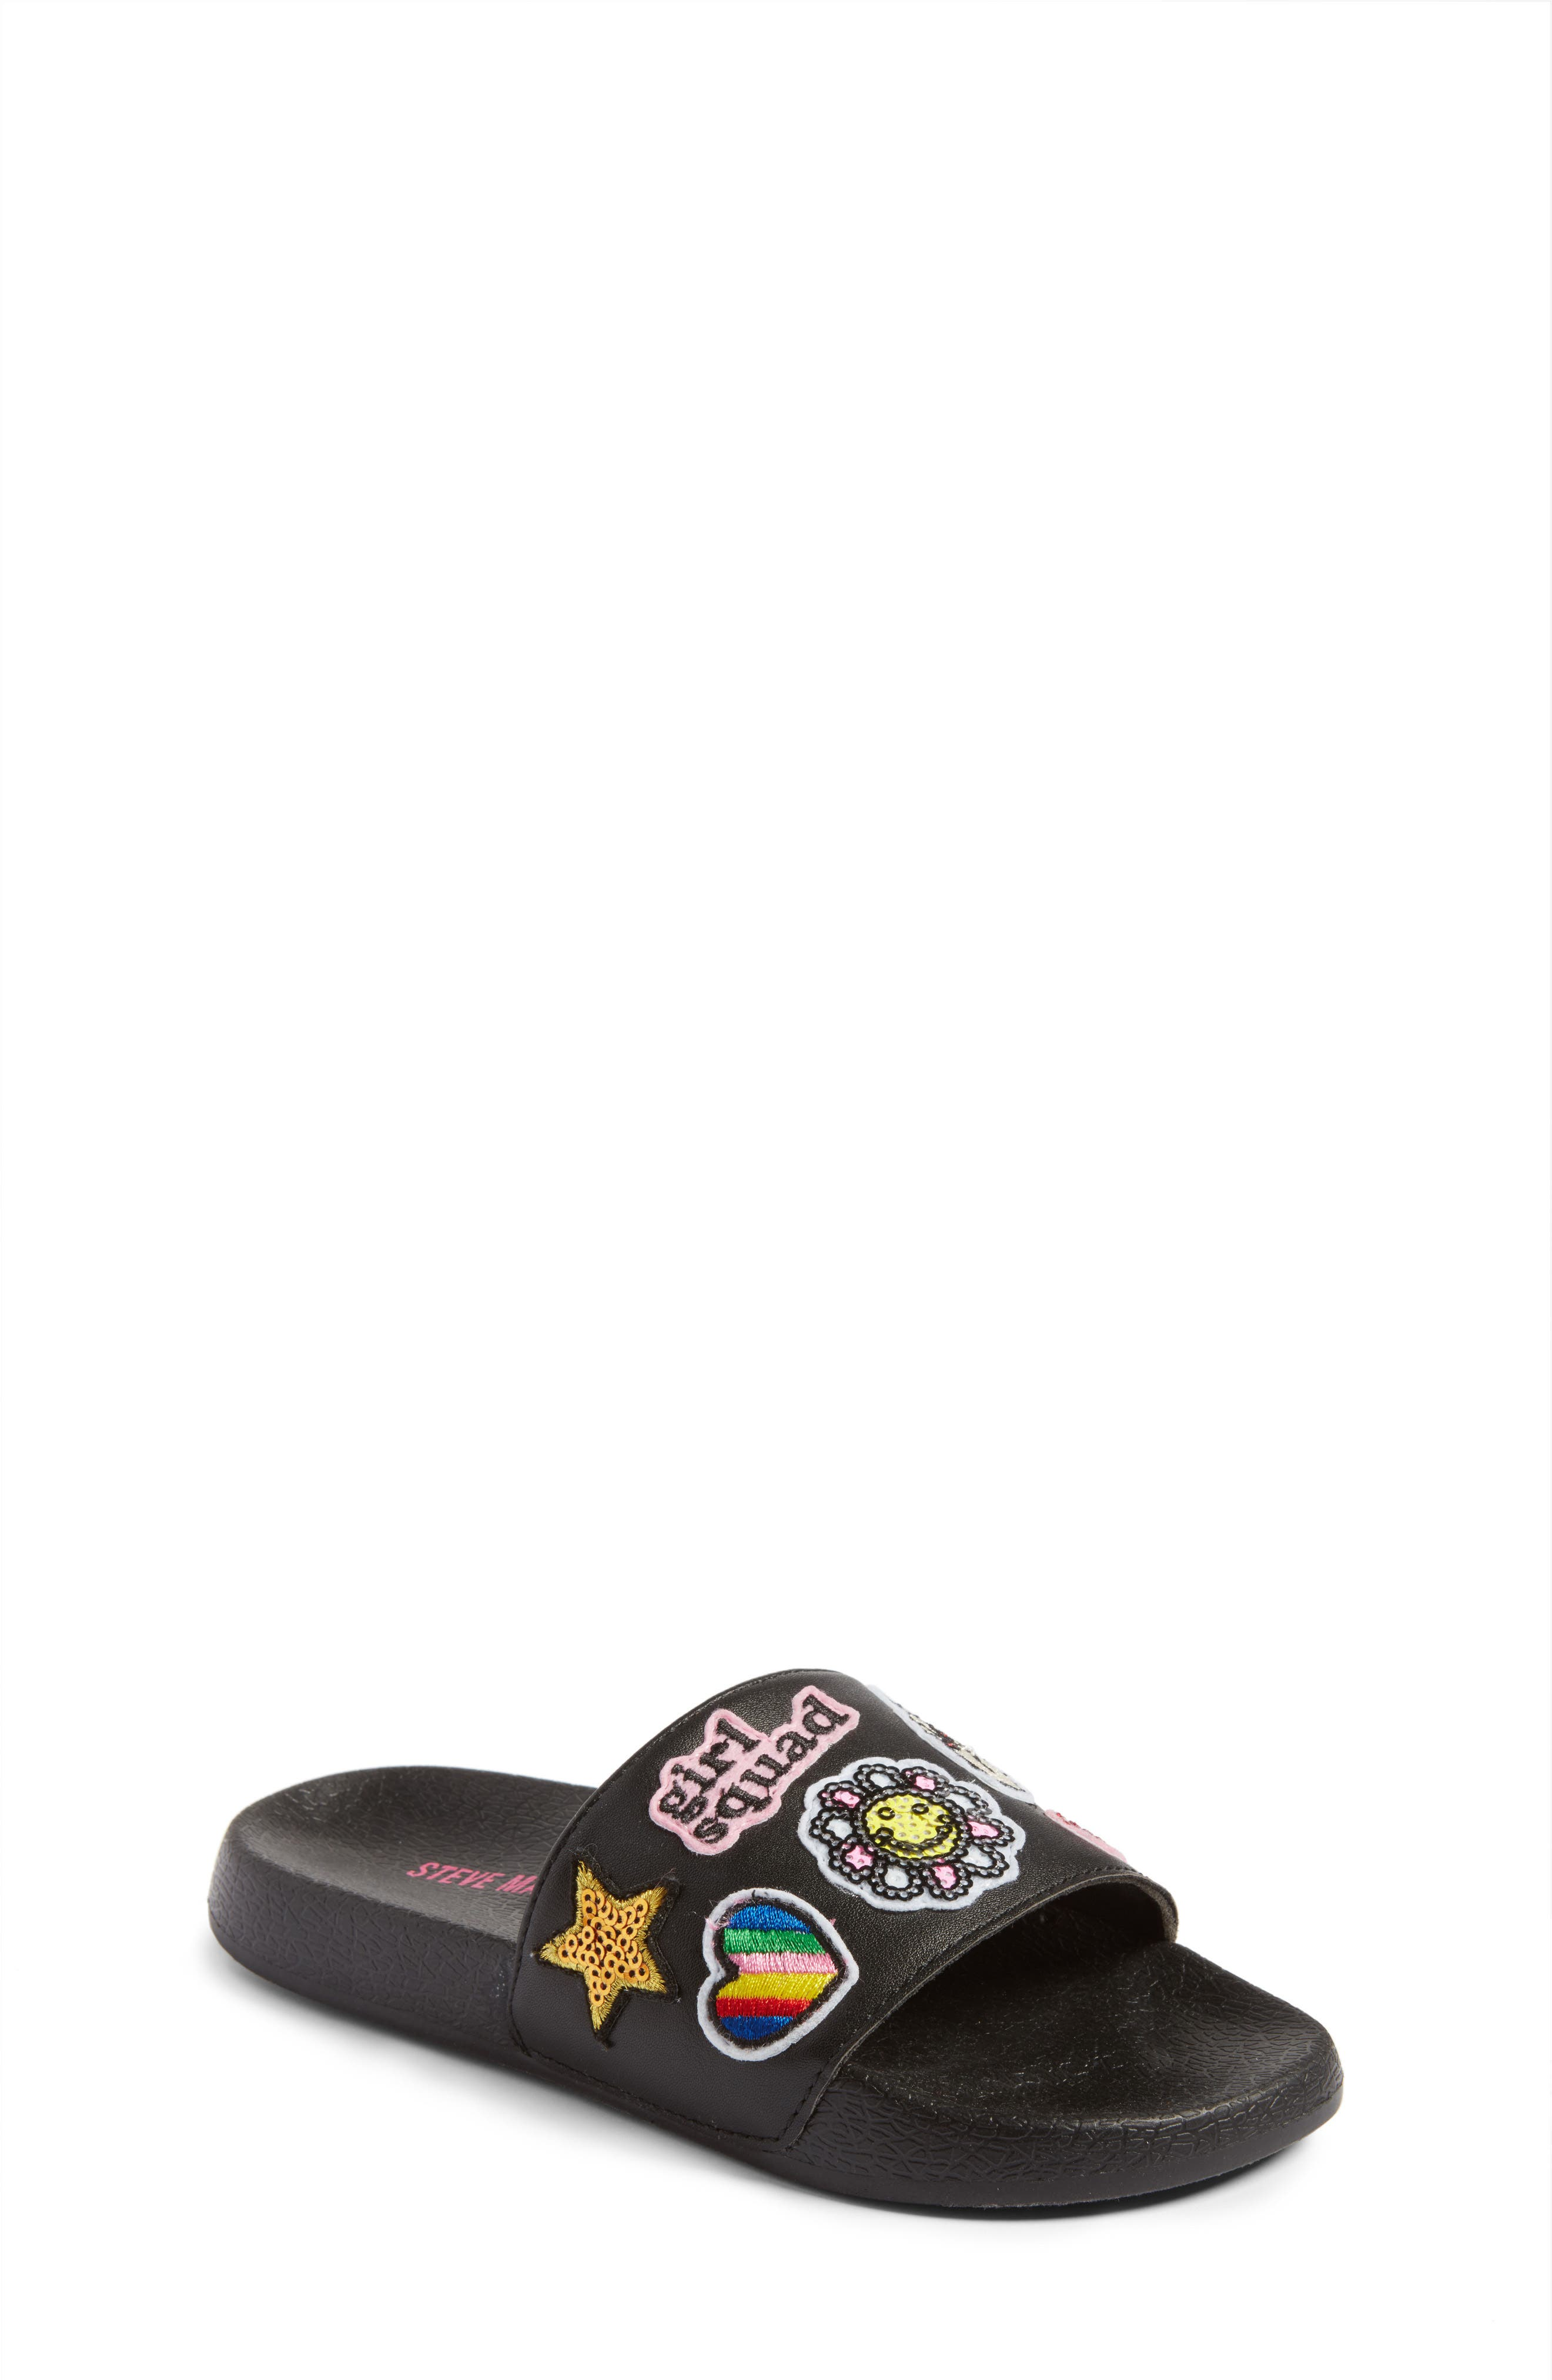 Steve Madden Grlsquad Slide Sandal (Little Kid & Big Kid)